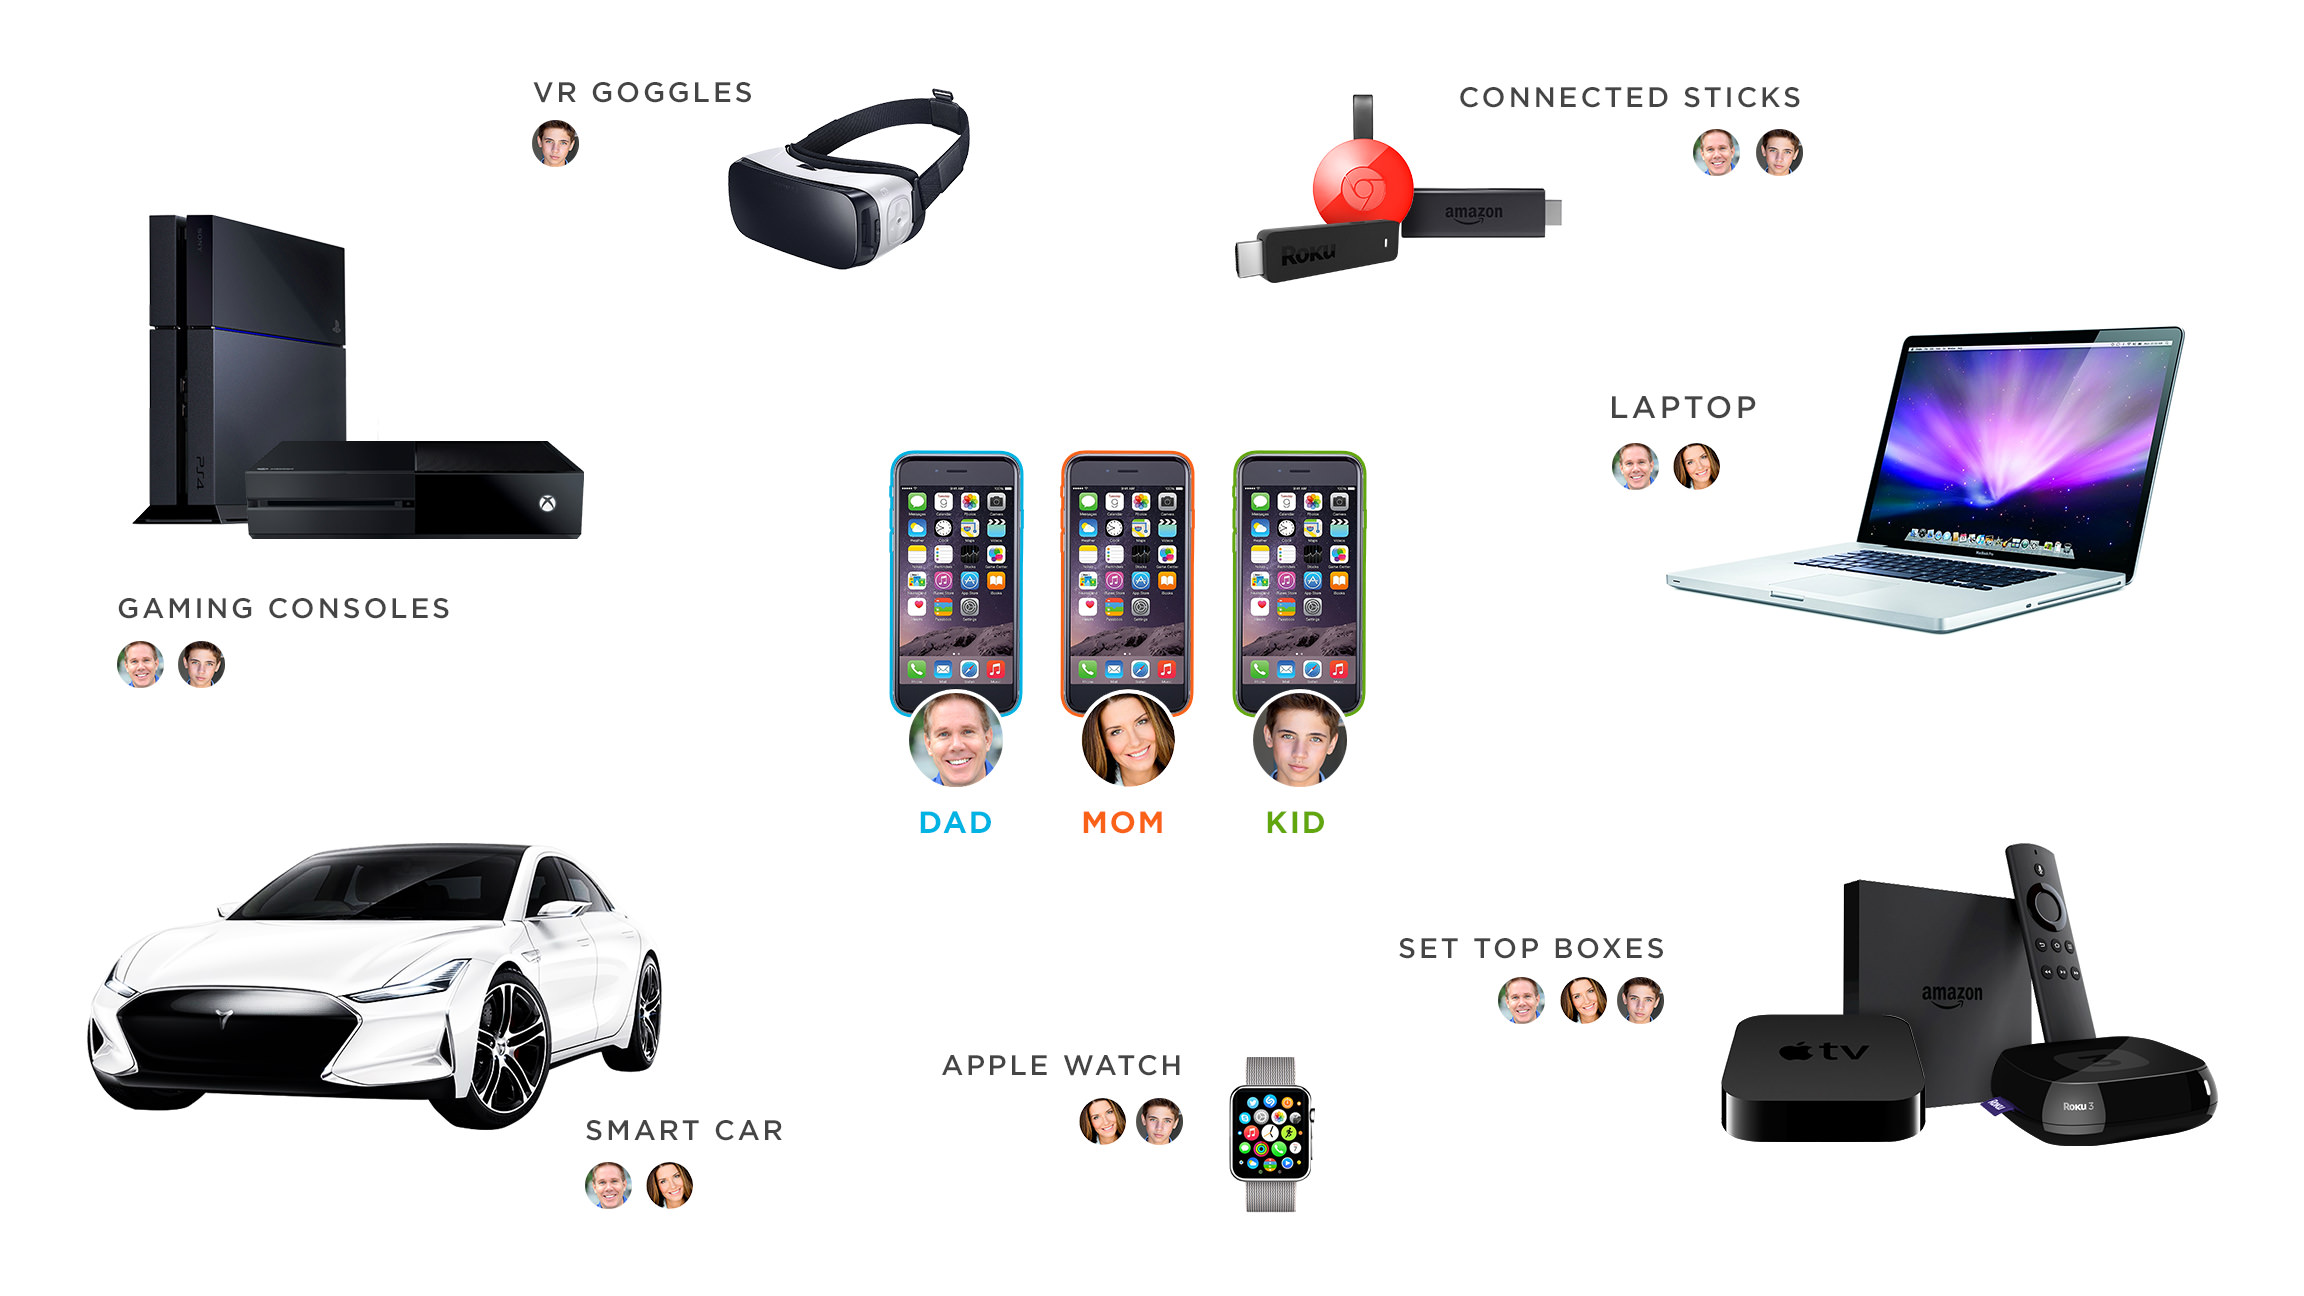 A collage of gaming consoles, VR Goggles, connected sticks, laptop, set up boxes, smart cars, Apple watches and how Kochava can measure household use of OTT devices